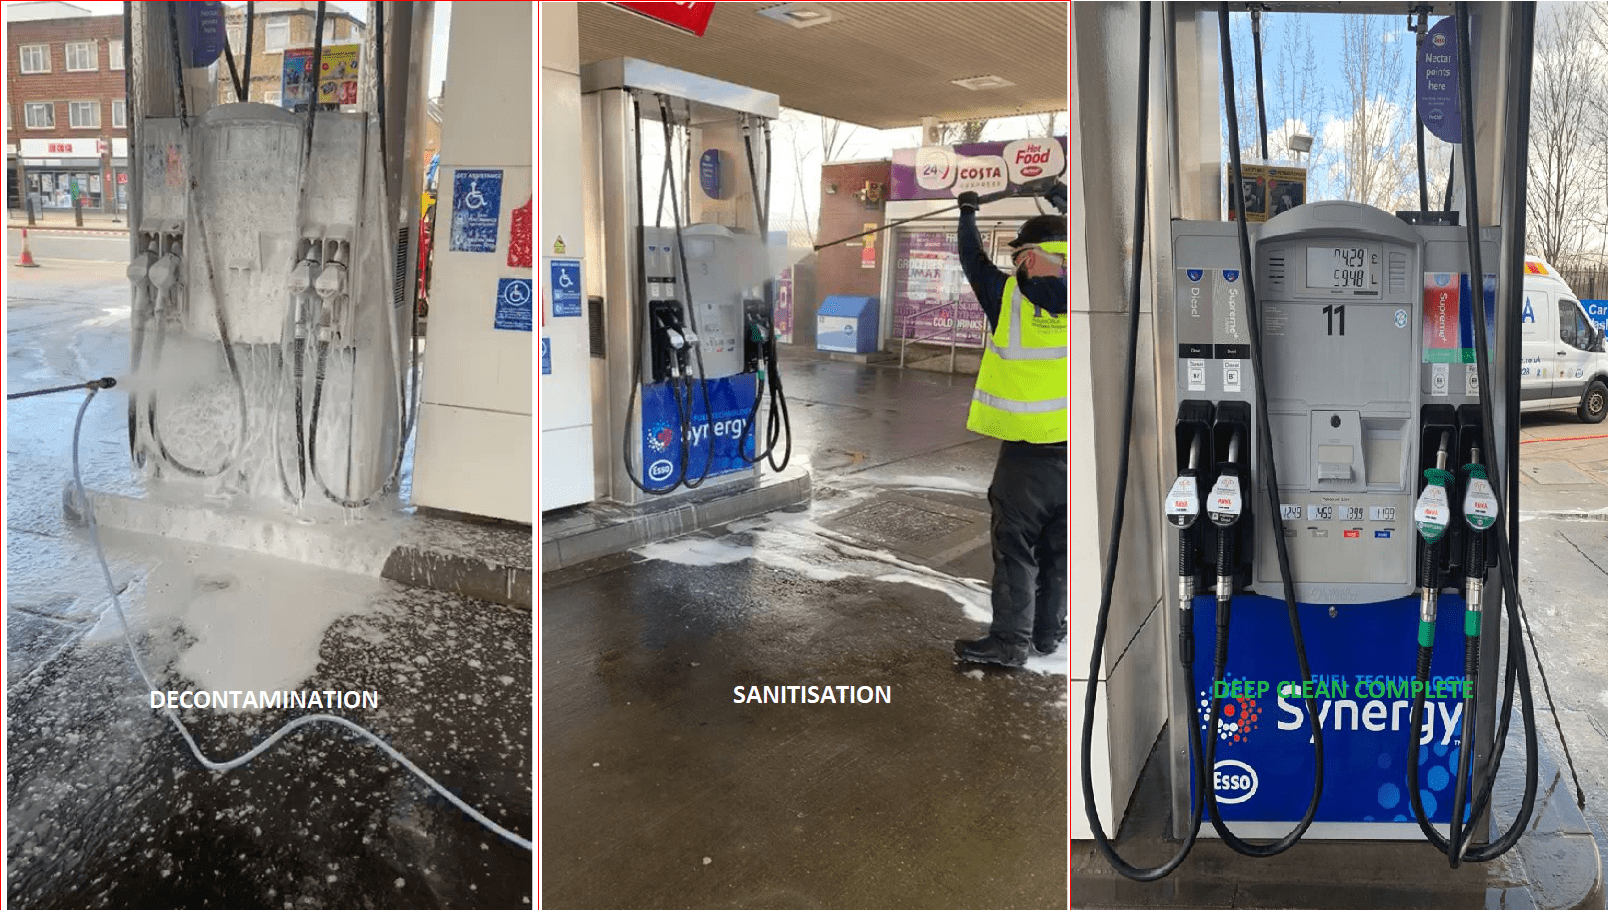 decontamination and sanitisation